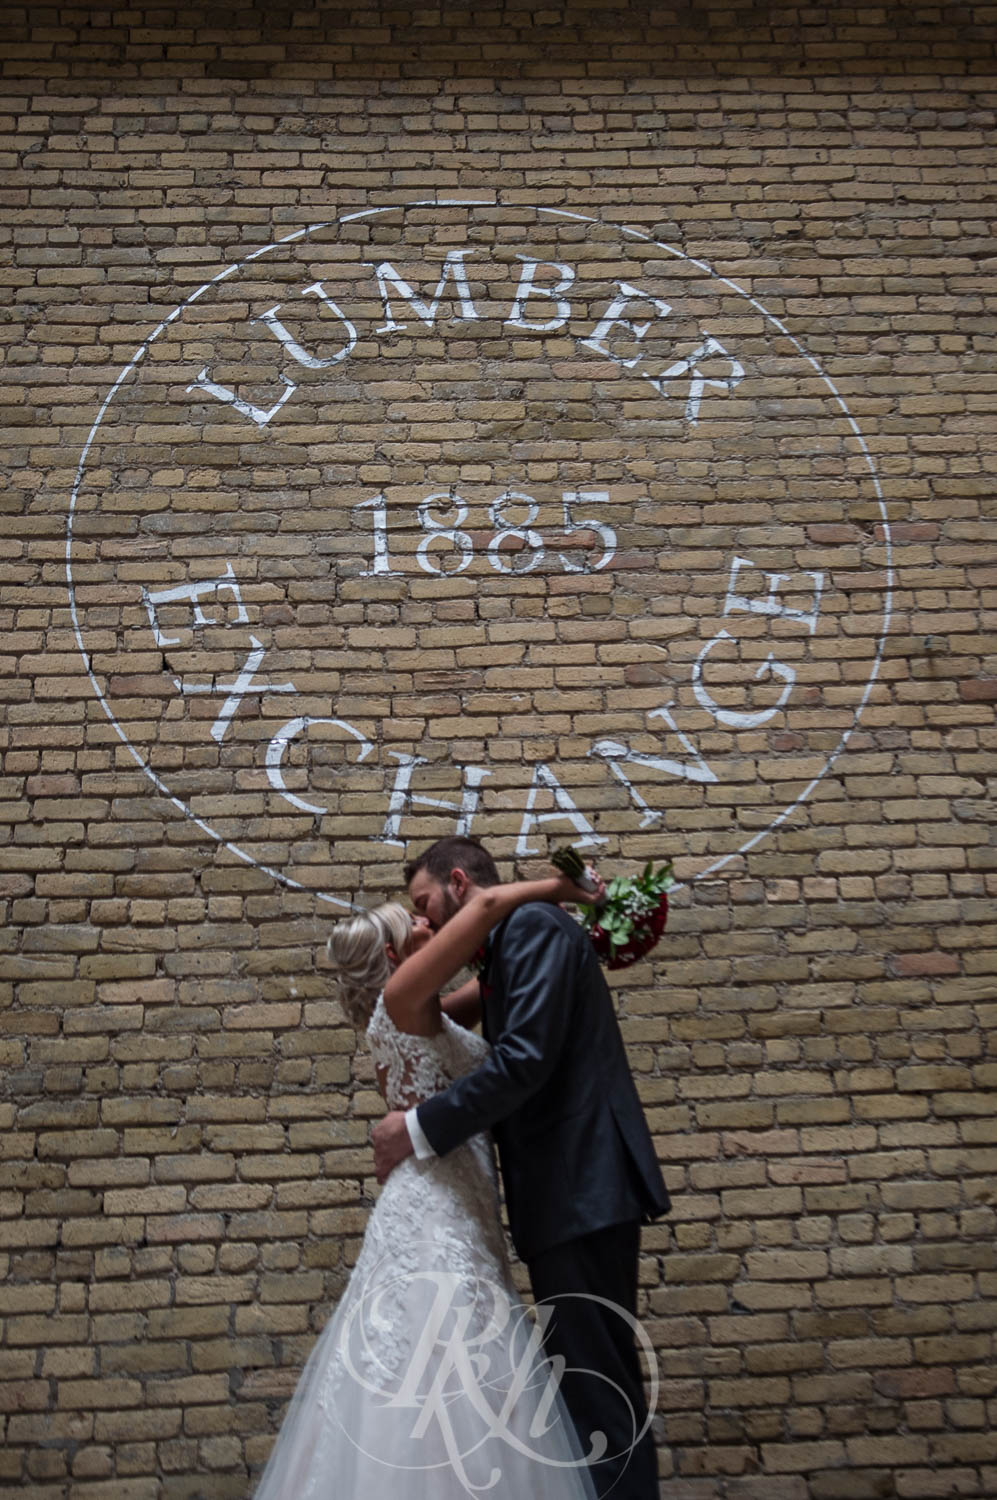 Katie & Jeff - Minnesota Wedding Photography - Lumber Exchange Building - RKH Images - Blog  (18 of 49).jpg